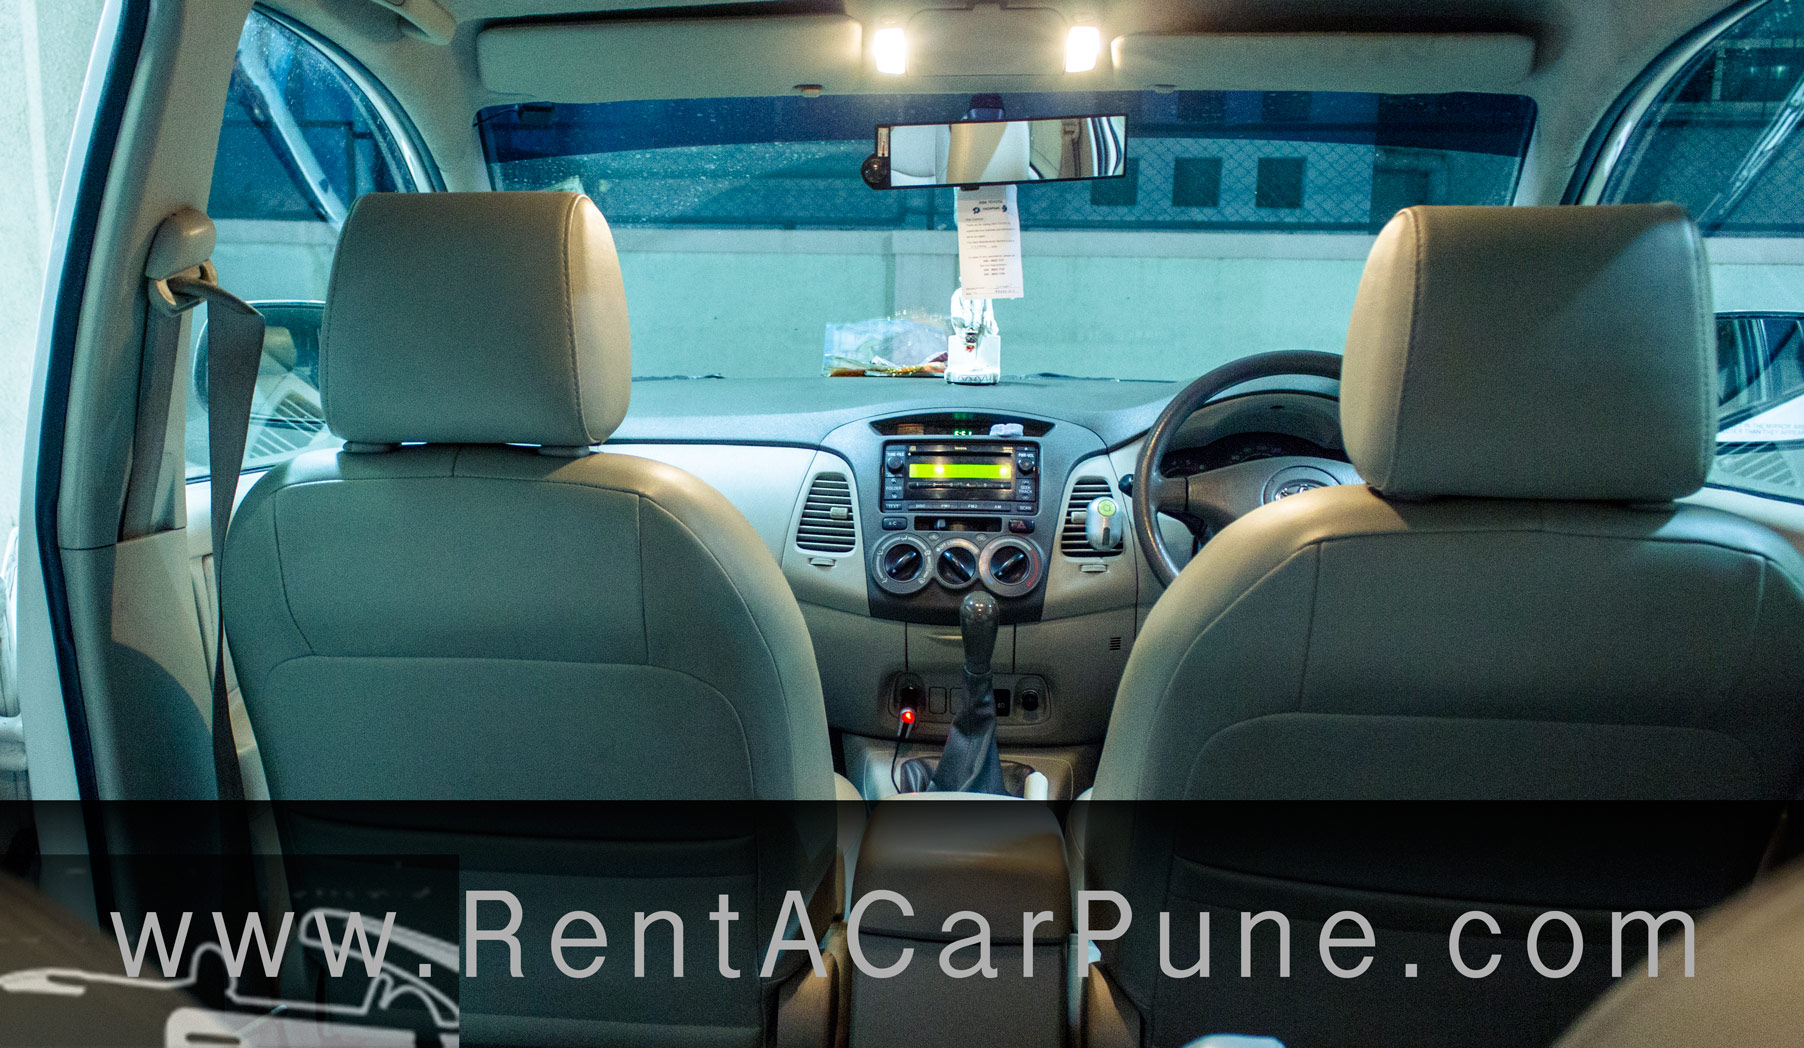 cars-on-rent-in-pune